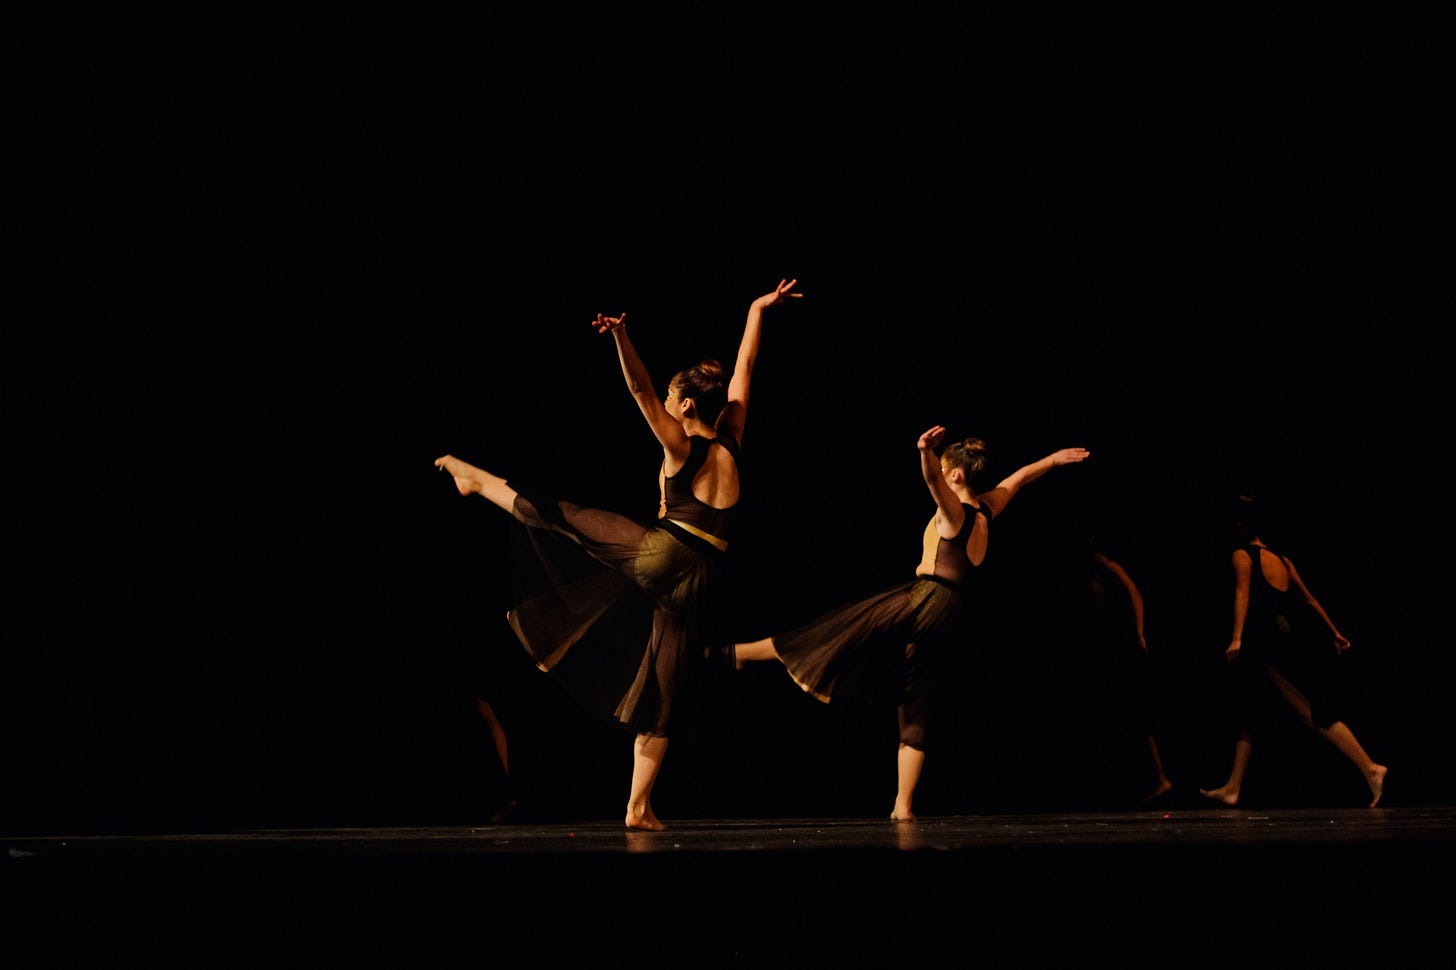 """Image of ballet dancers practicing for article titled """"this is your apprenticeship"""" on The Reflectionist"""